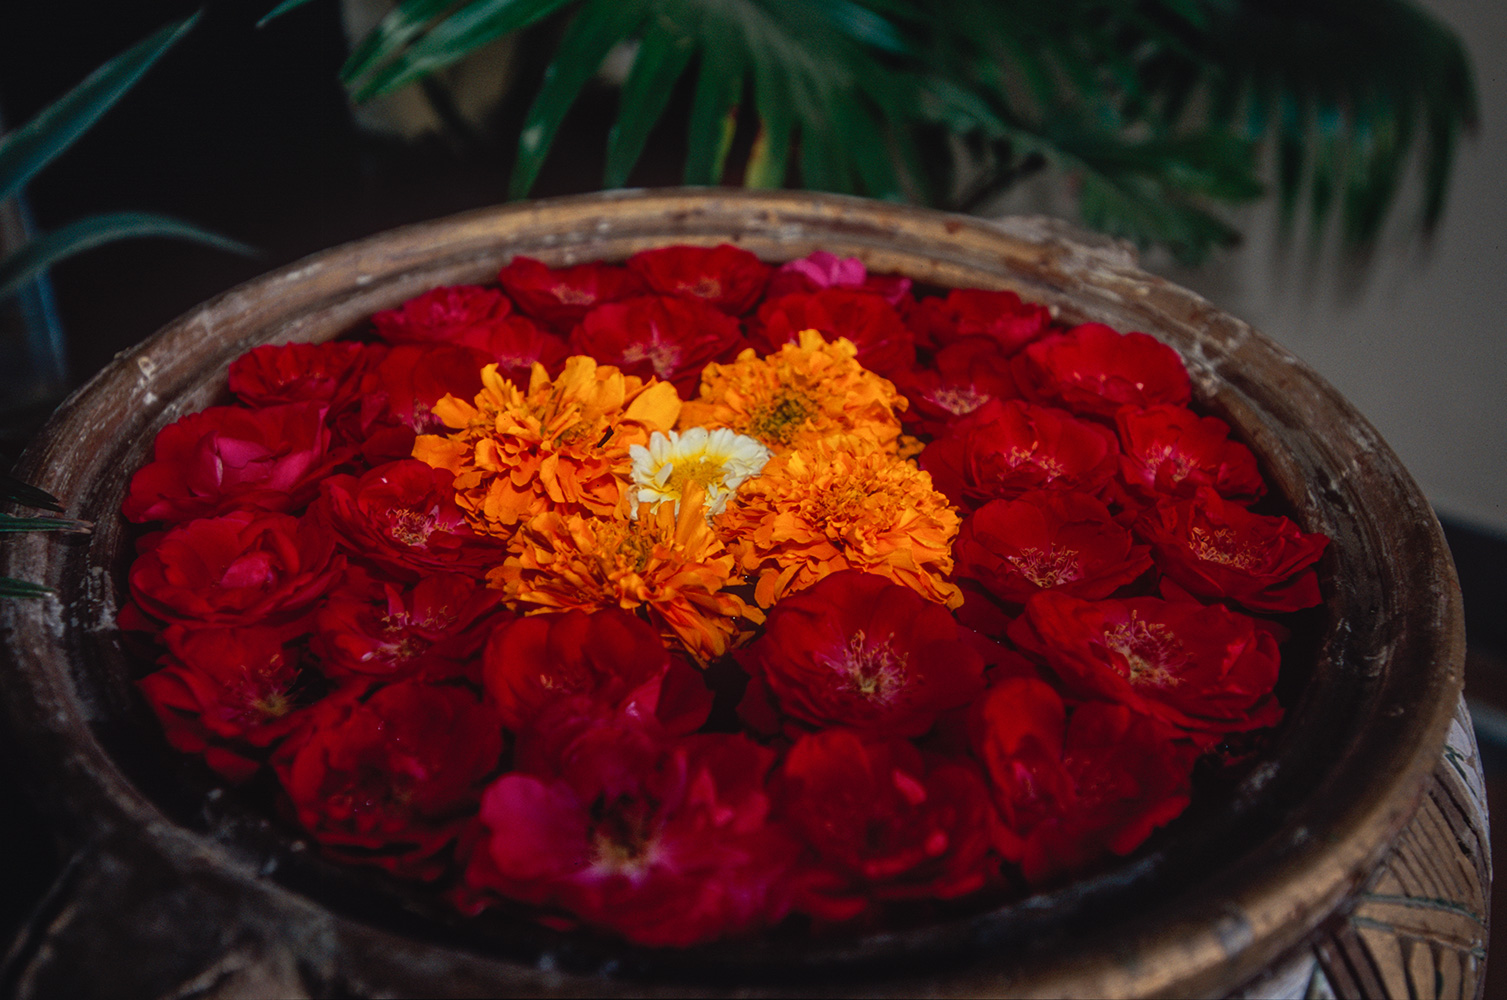 haridwar_temple_flowers_2004RVP